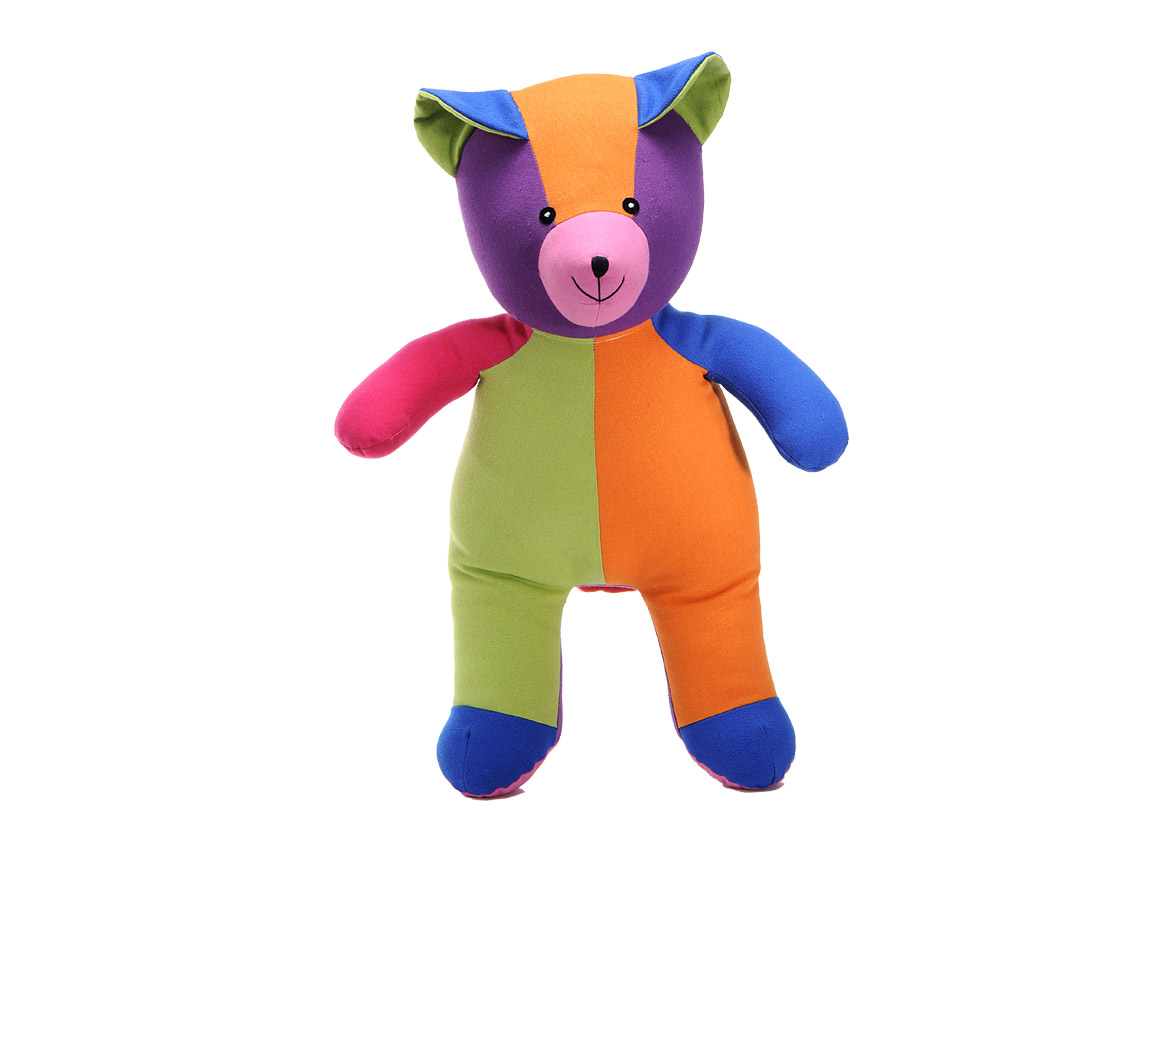 Grand Doudou Couleur Grand Doudou Couleur